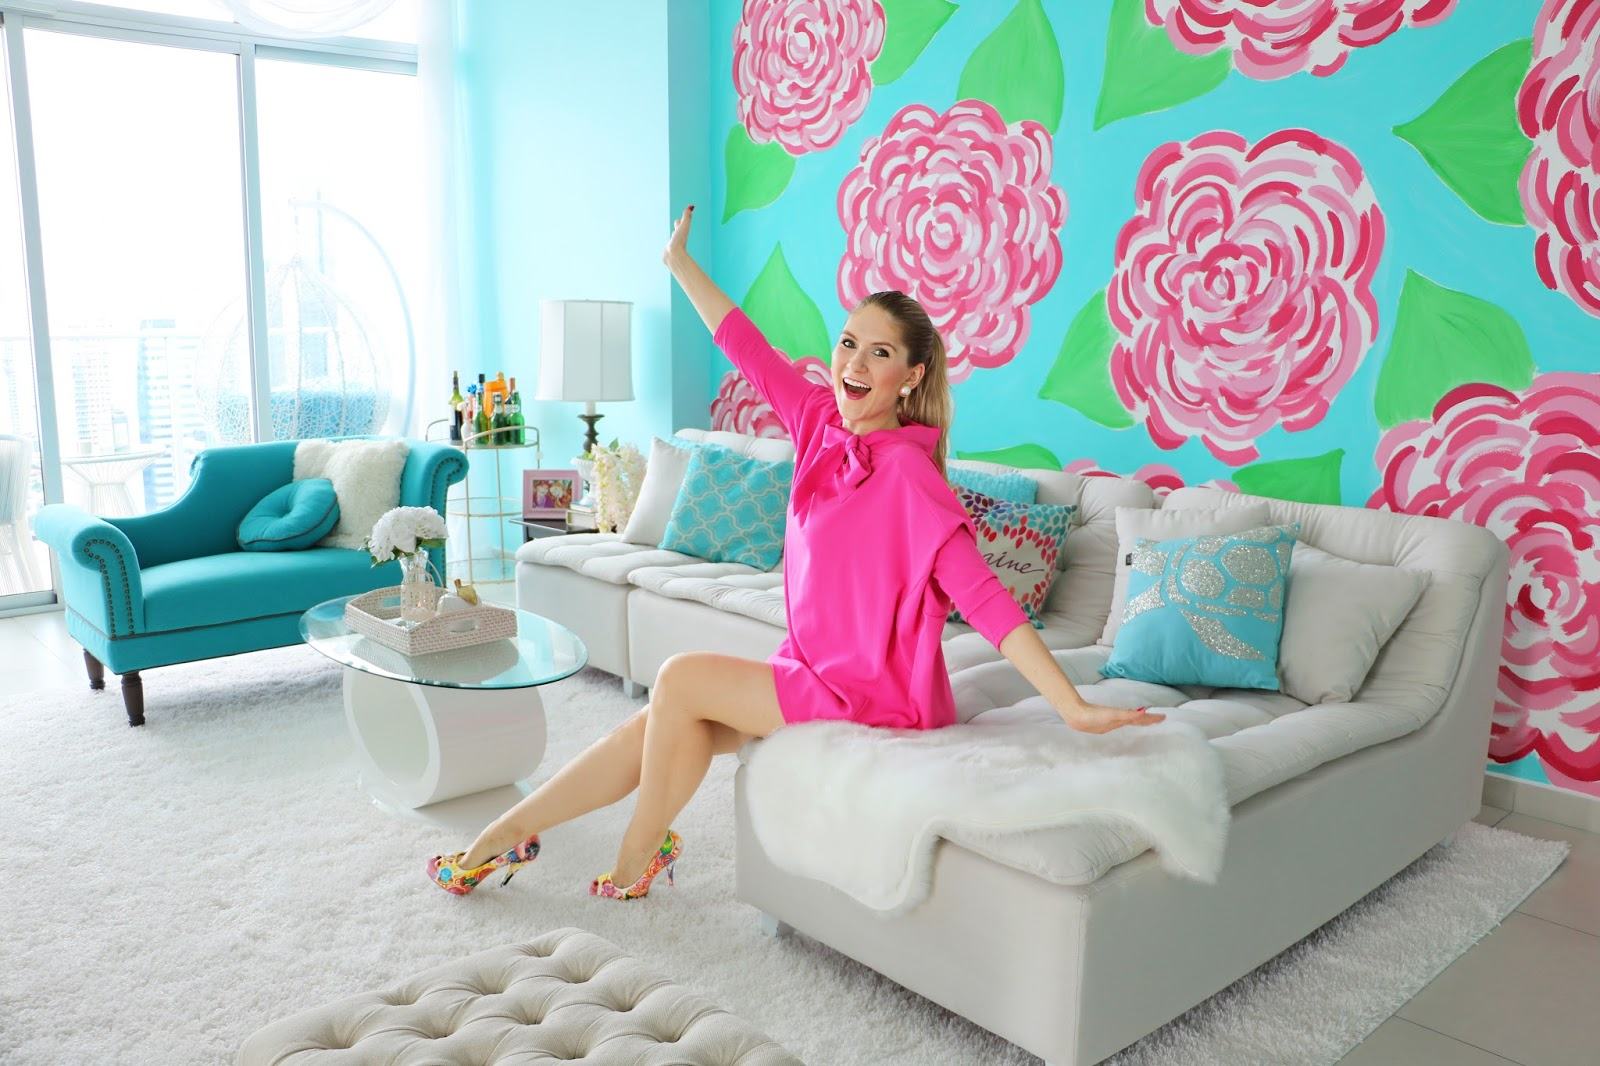 Check out what a girly Fashion blogger's apartment looks like!